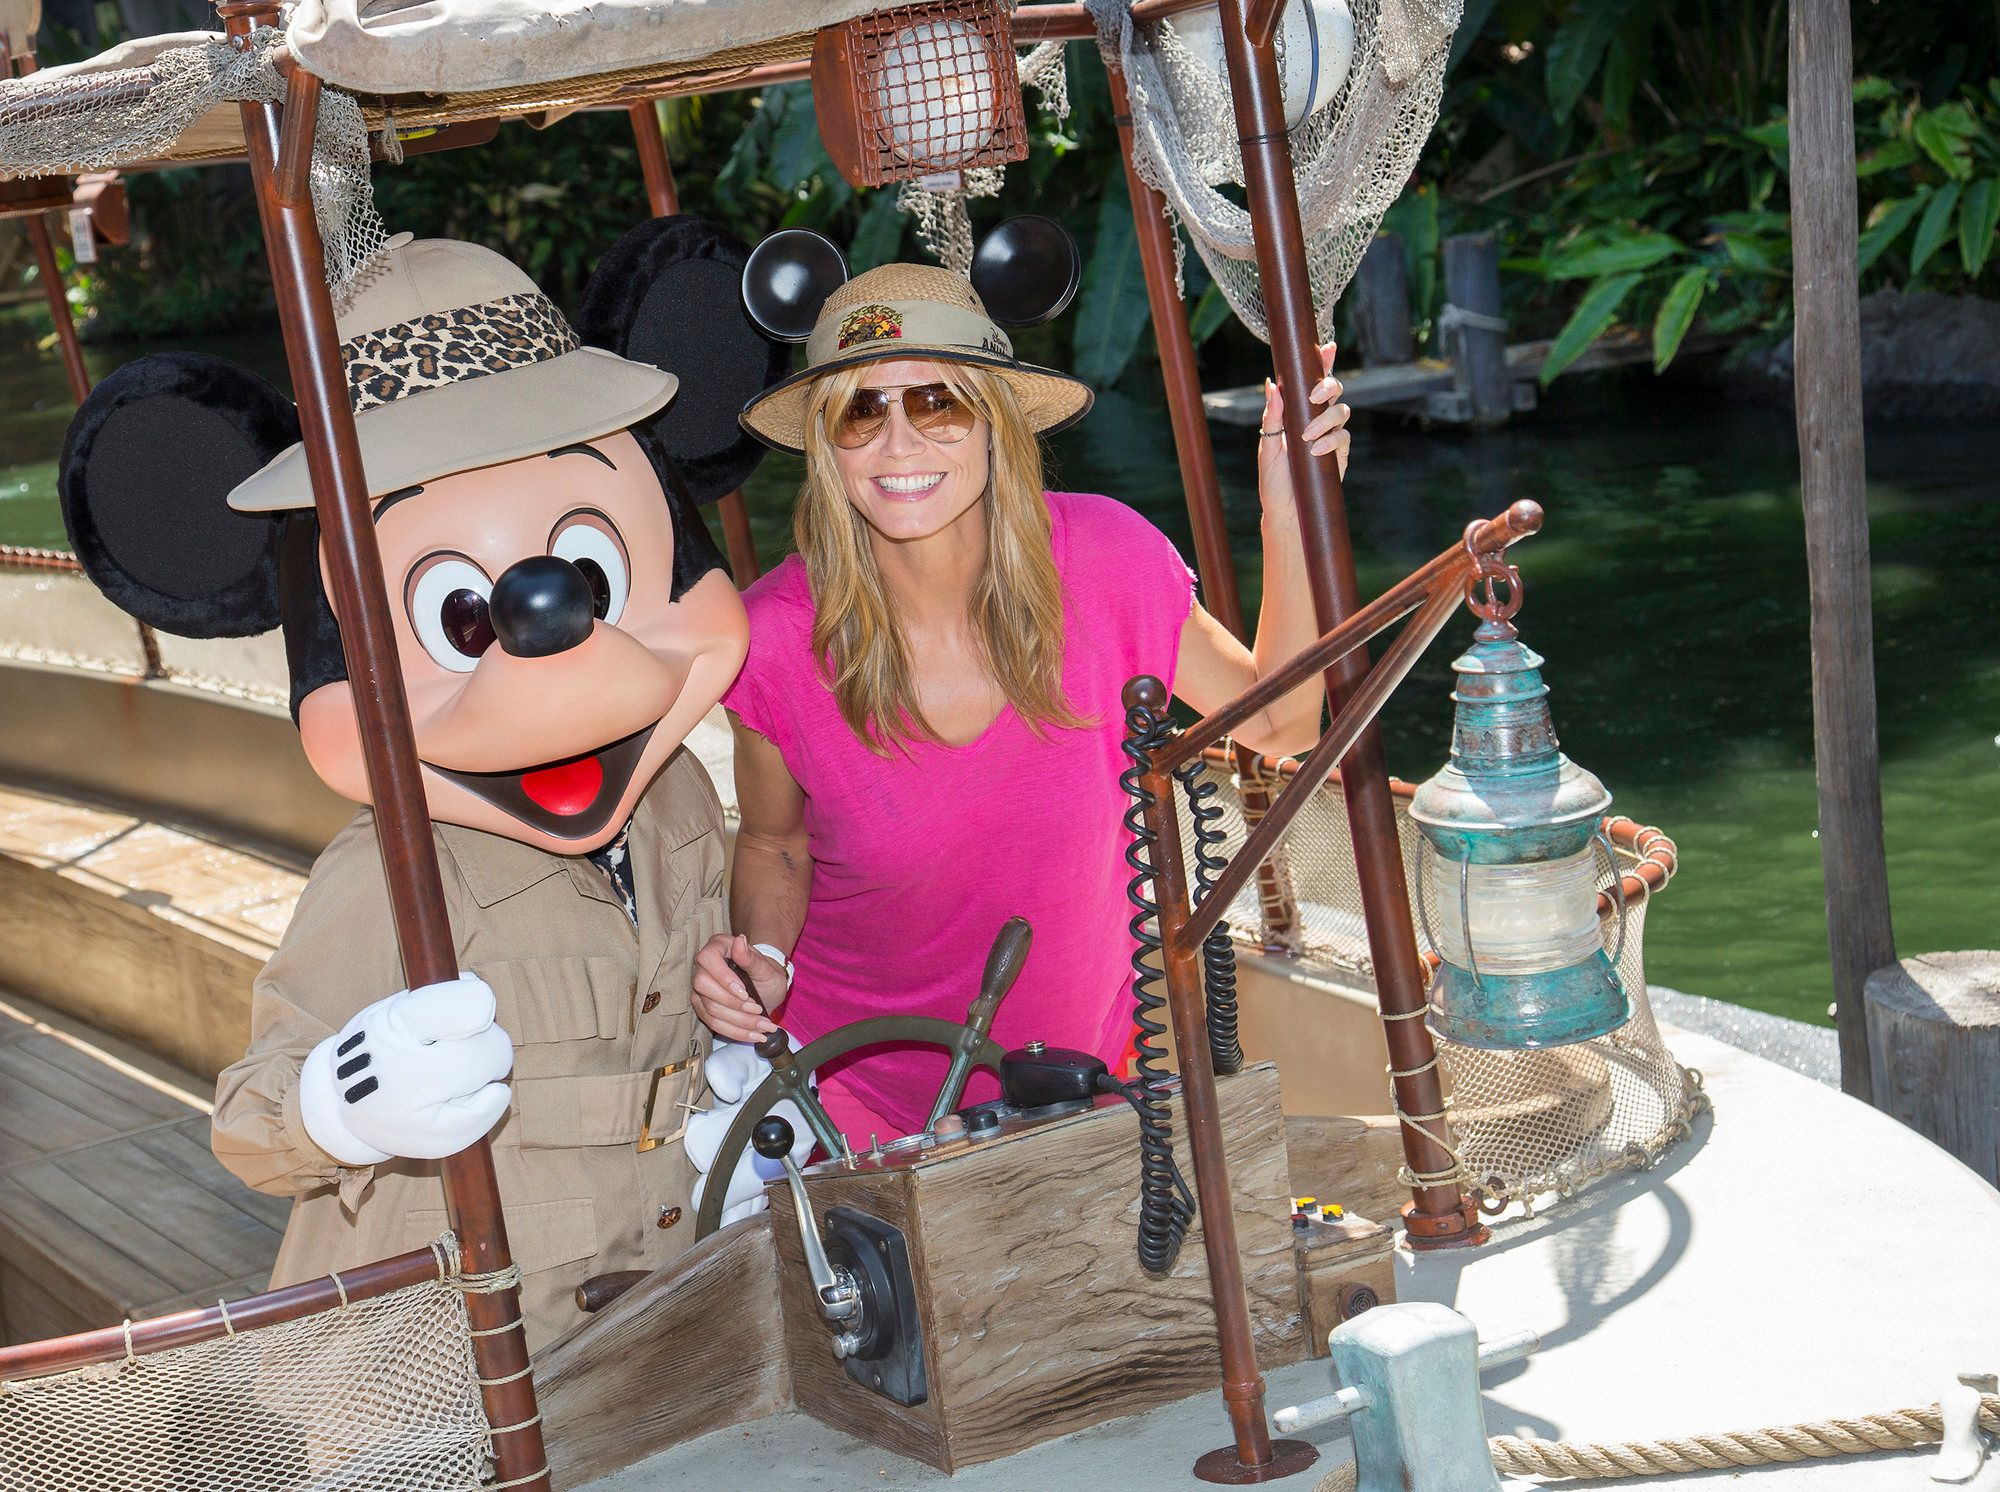 ANAHEIM, CA - MAY 28:  In this handout photo provided by Disney Parks, Heidi Klum joins Mickey Mouse aboard the world-famous Jungle Cruise attraction May 28, 2014 at Disneyland in Anaheim, California.  (Photo by Paul Hiffmeyer/Disney Parks via Getty Images)